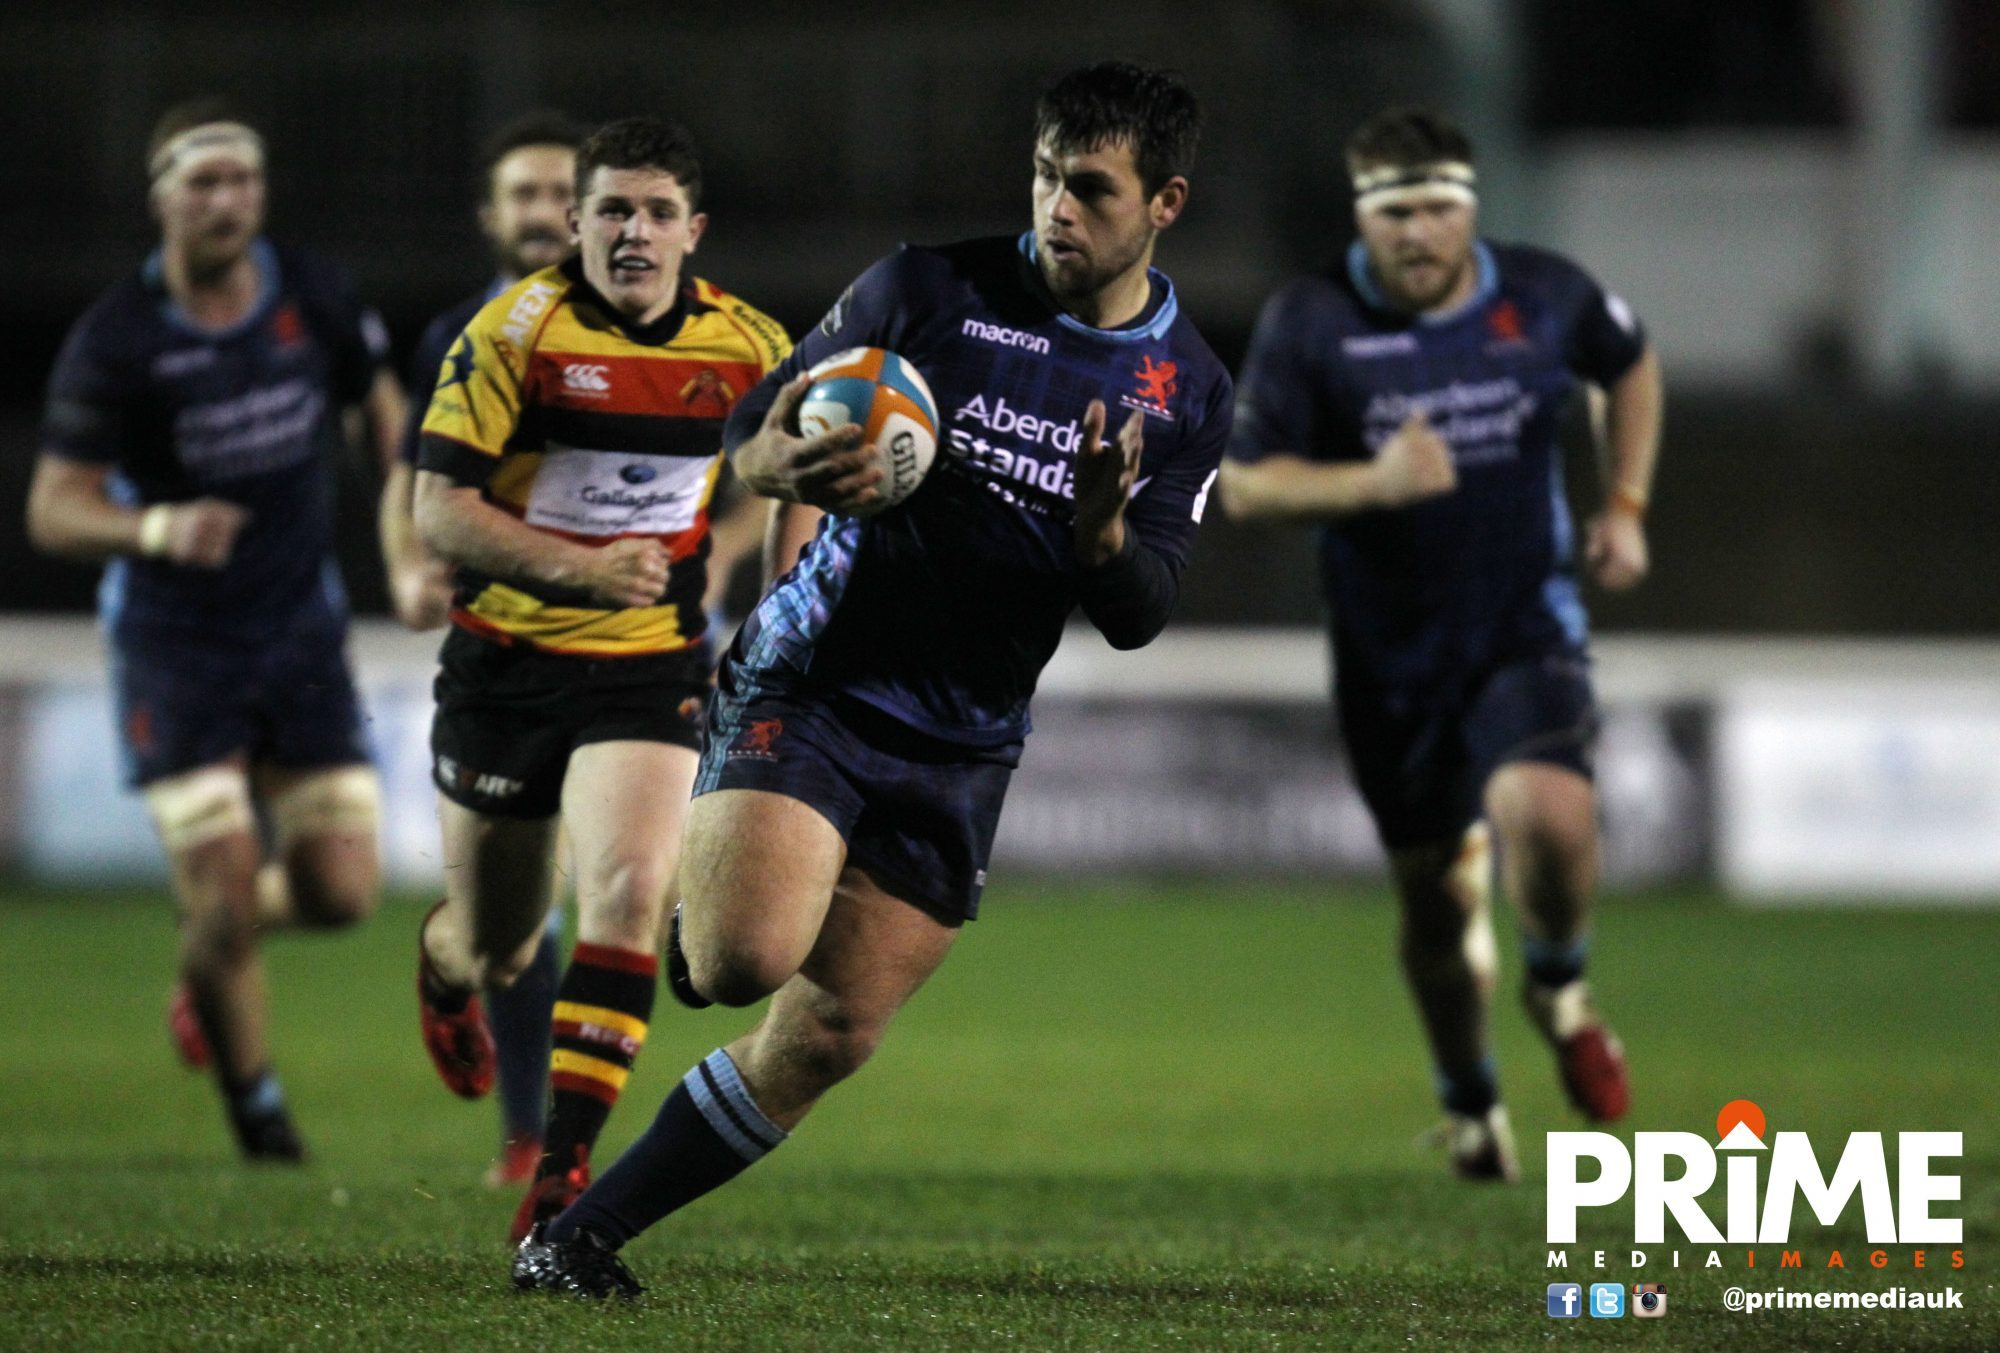 Scottish ran out winner against rivals Richmond (pic:PRiME media)